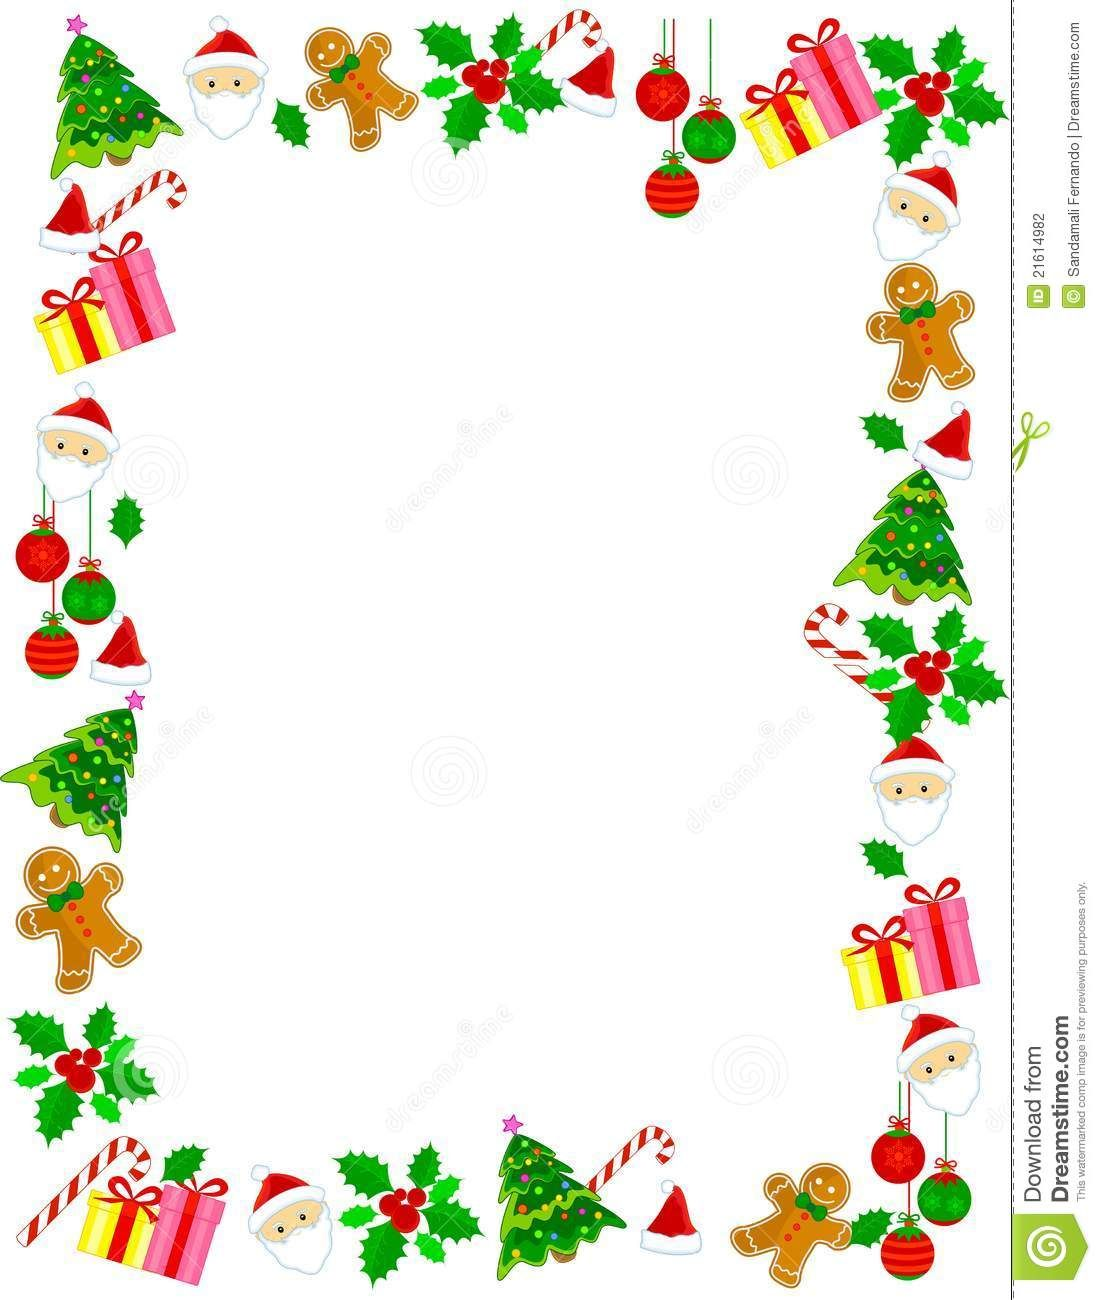 Christmas Border / Frame - Download From Over 50 Million ...